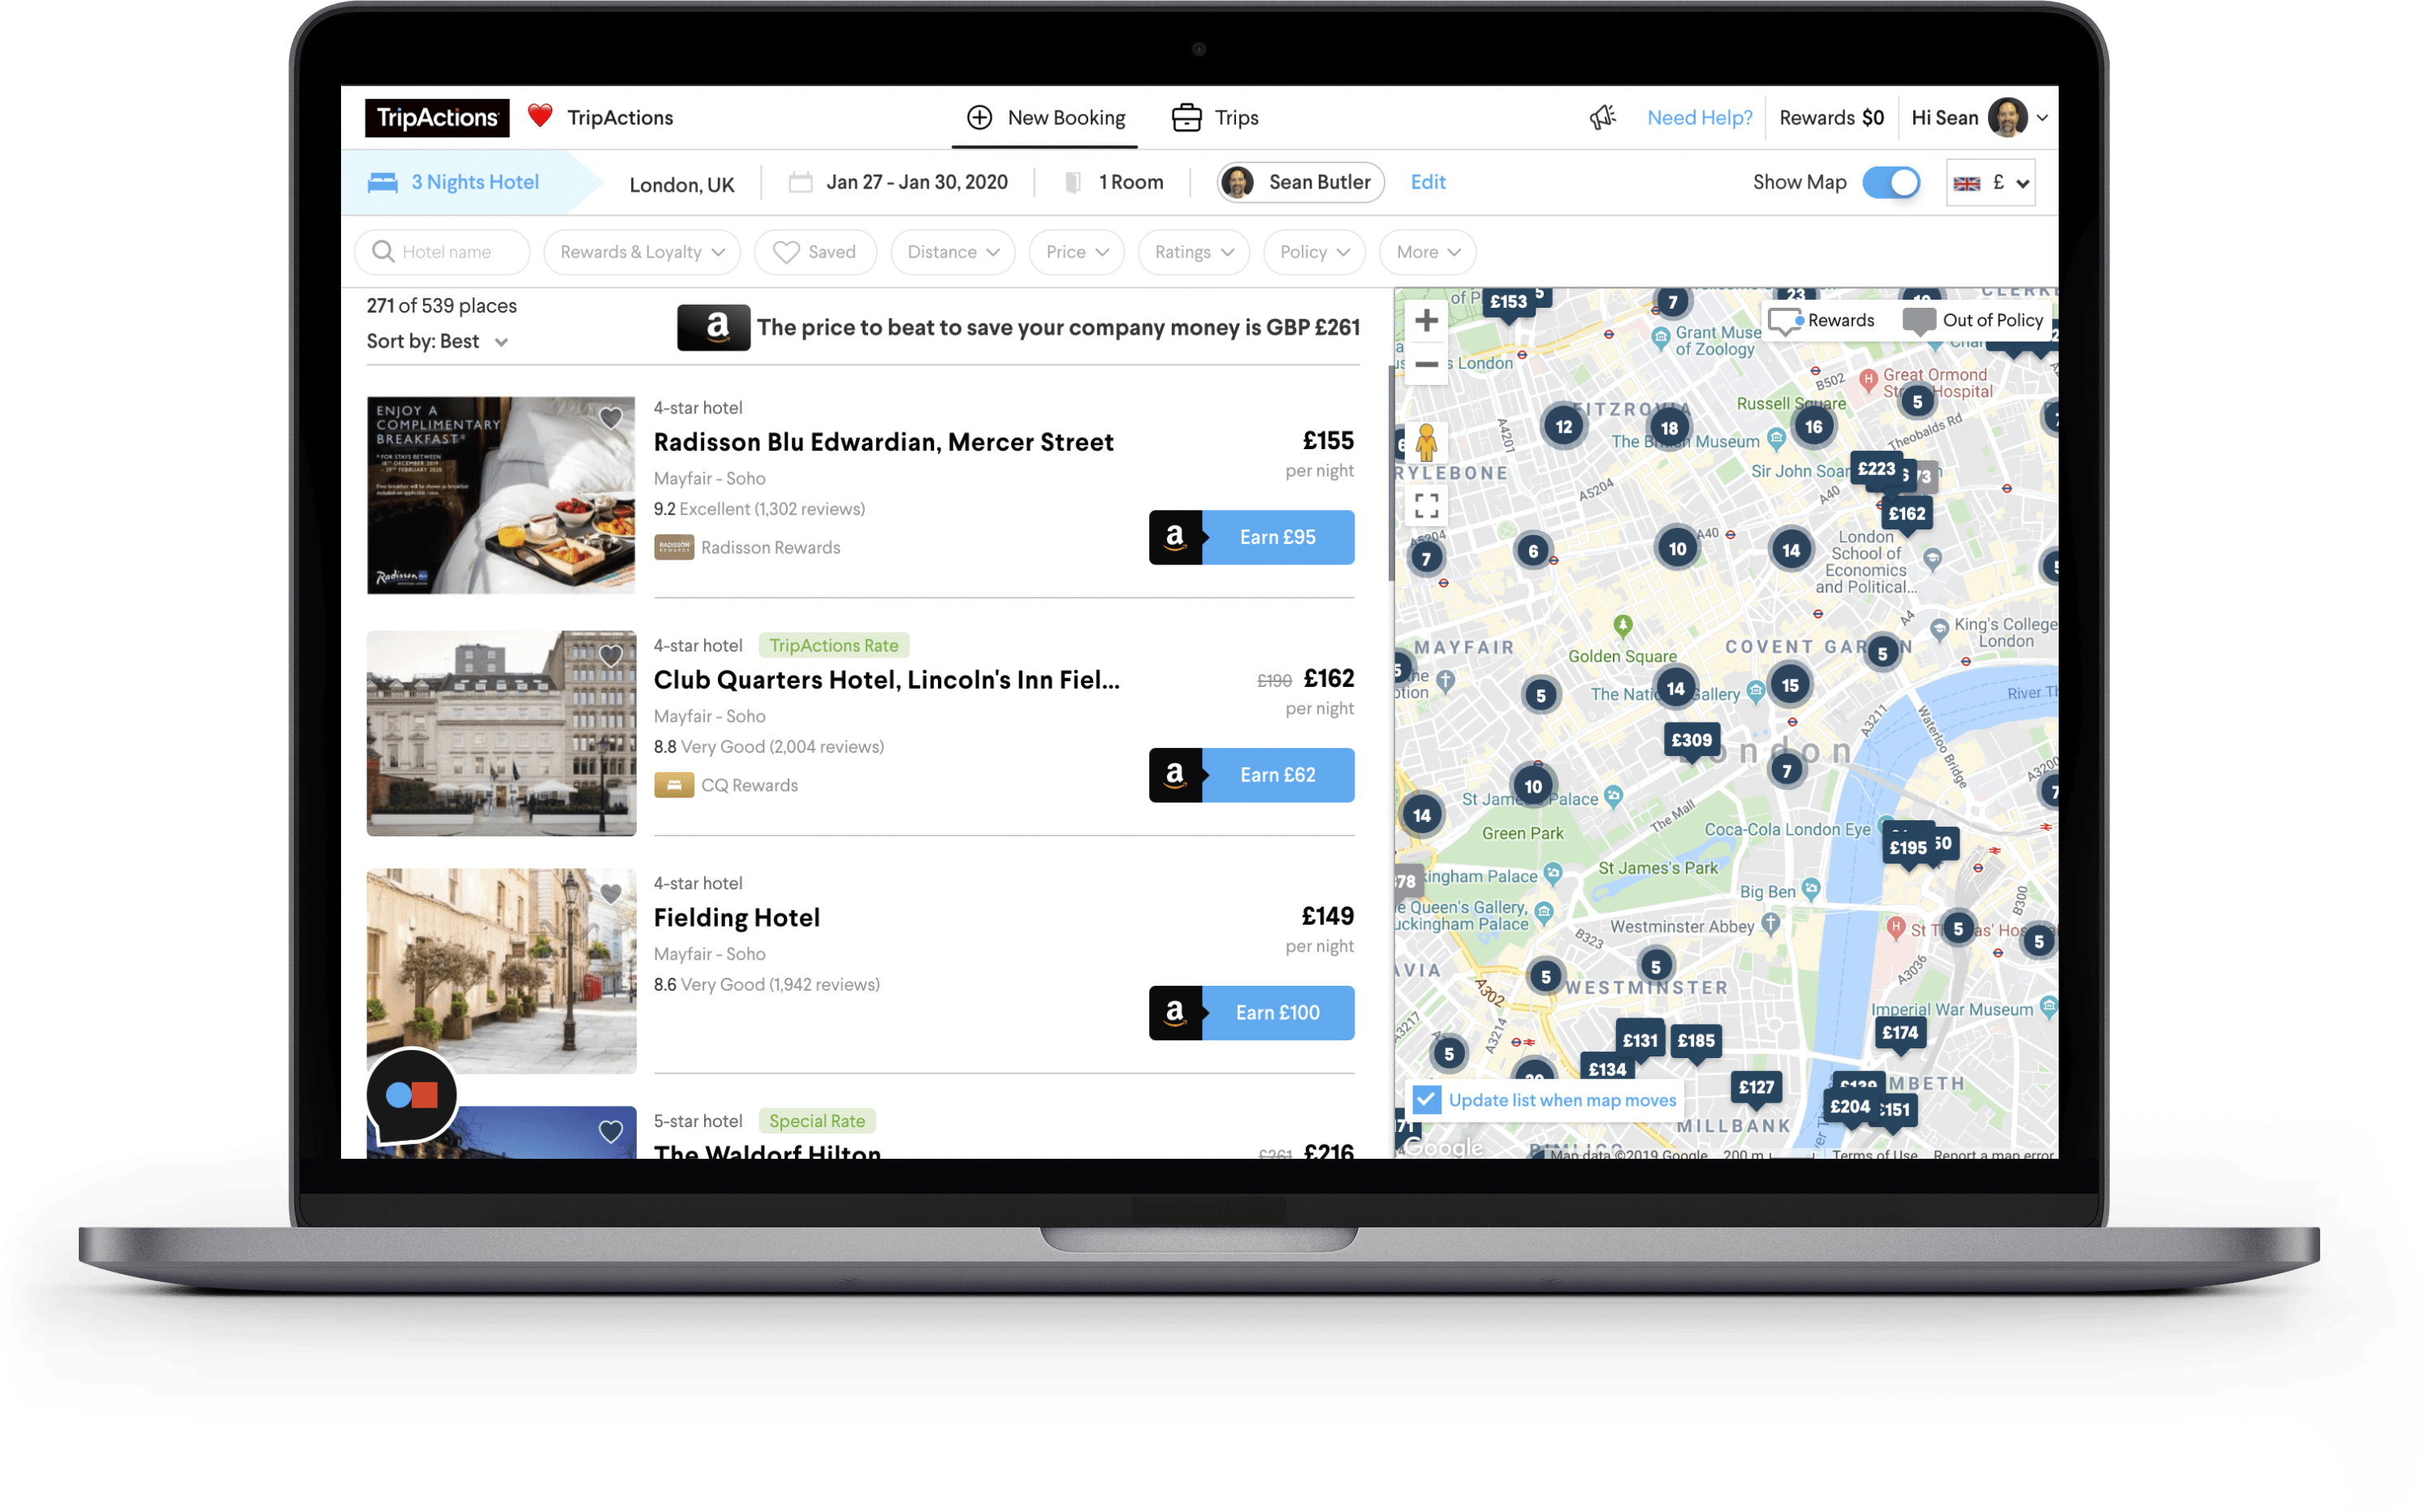 TripActions Product Screenshot - AI-driven, personalised search results